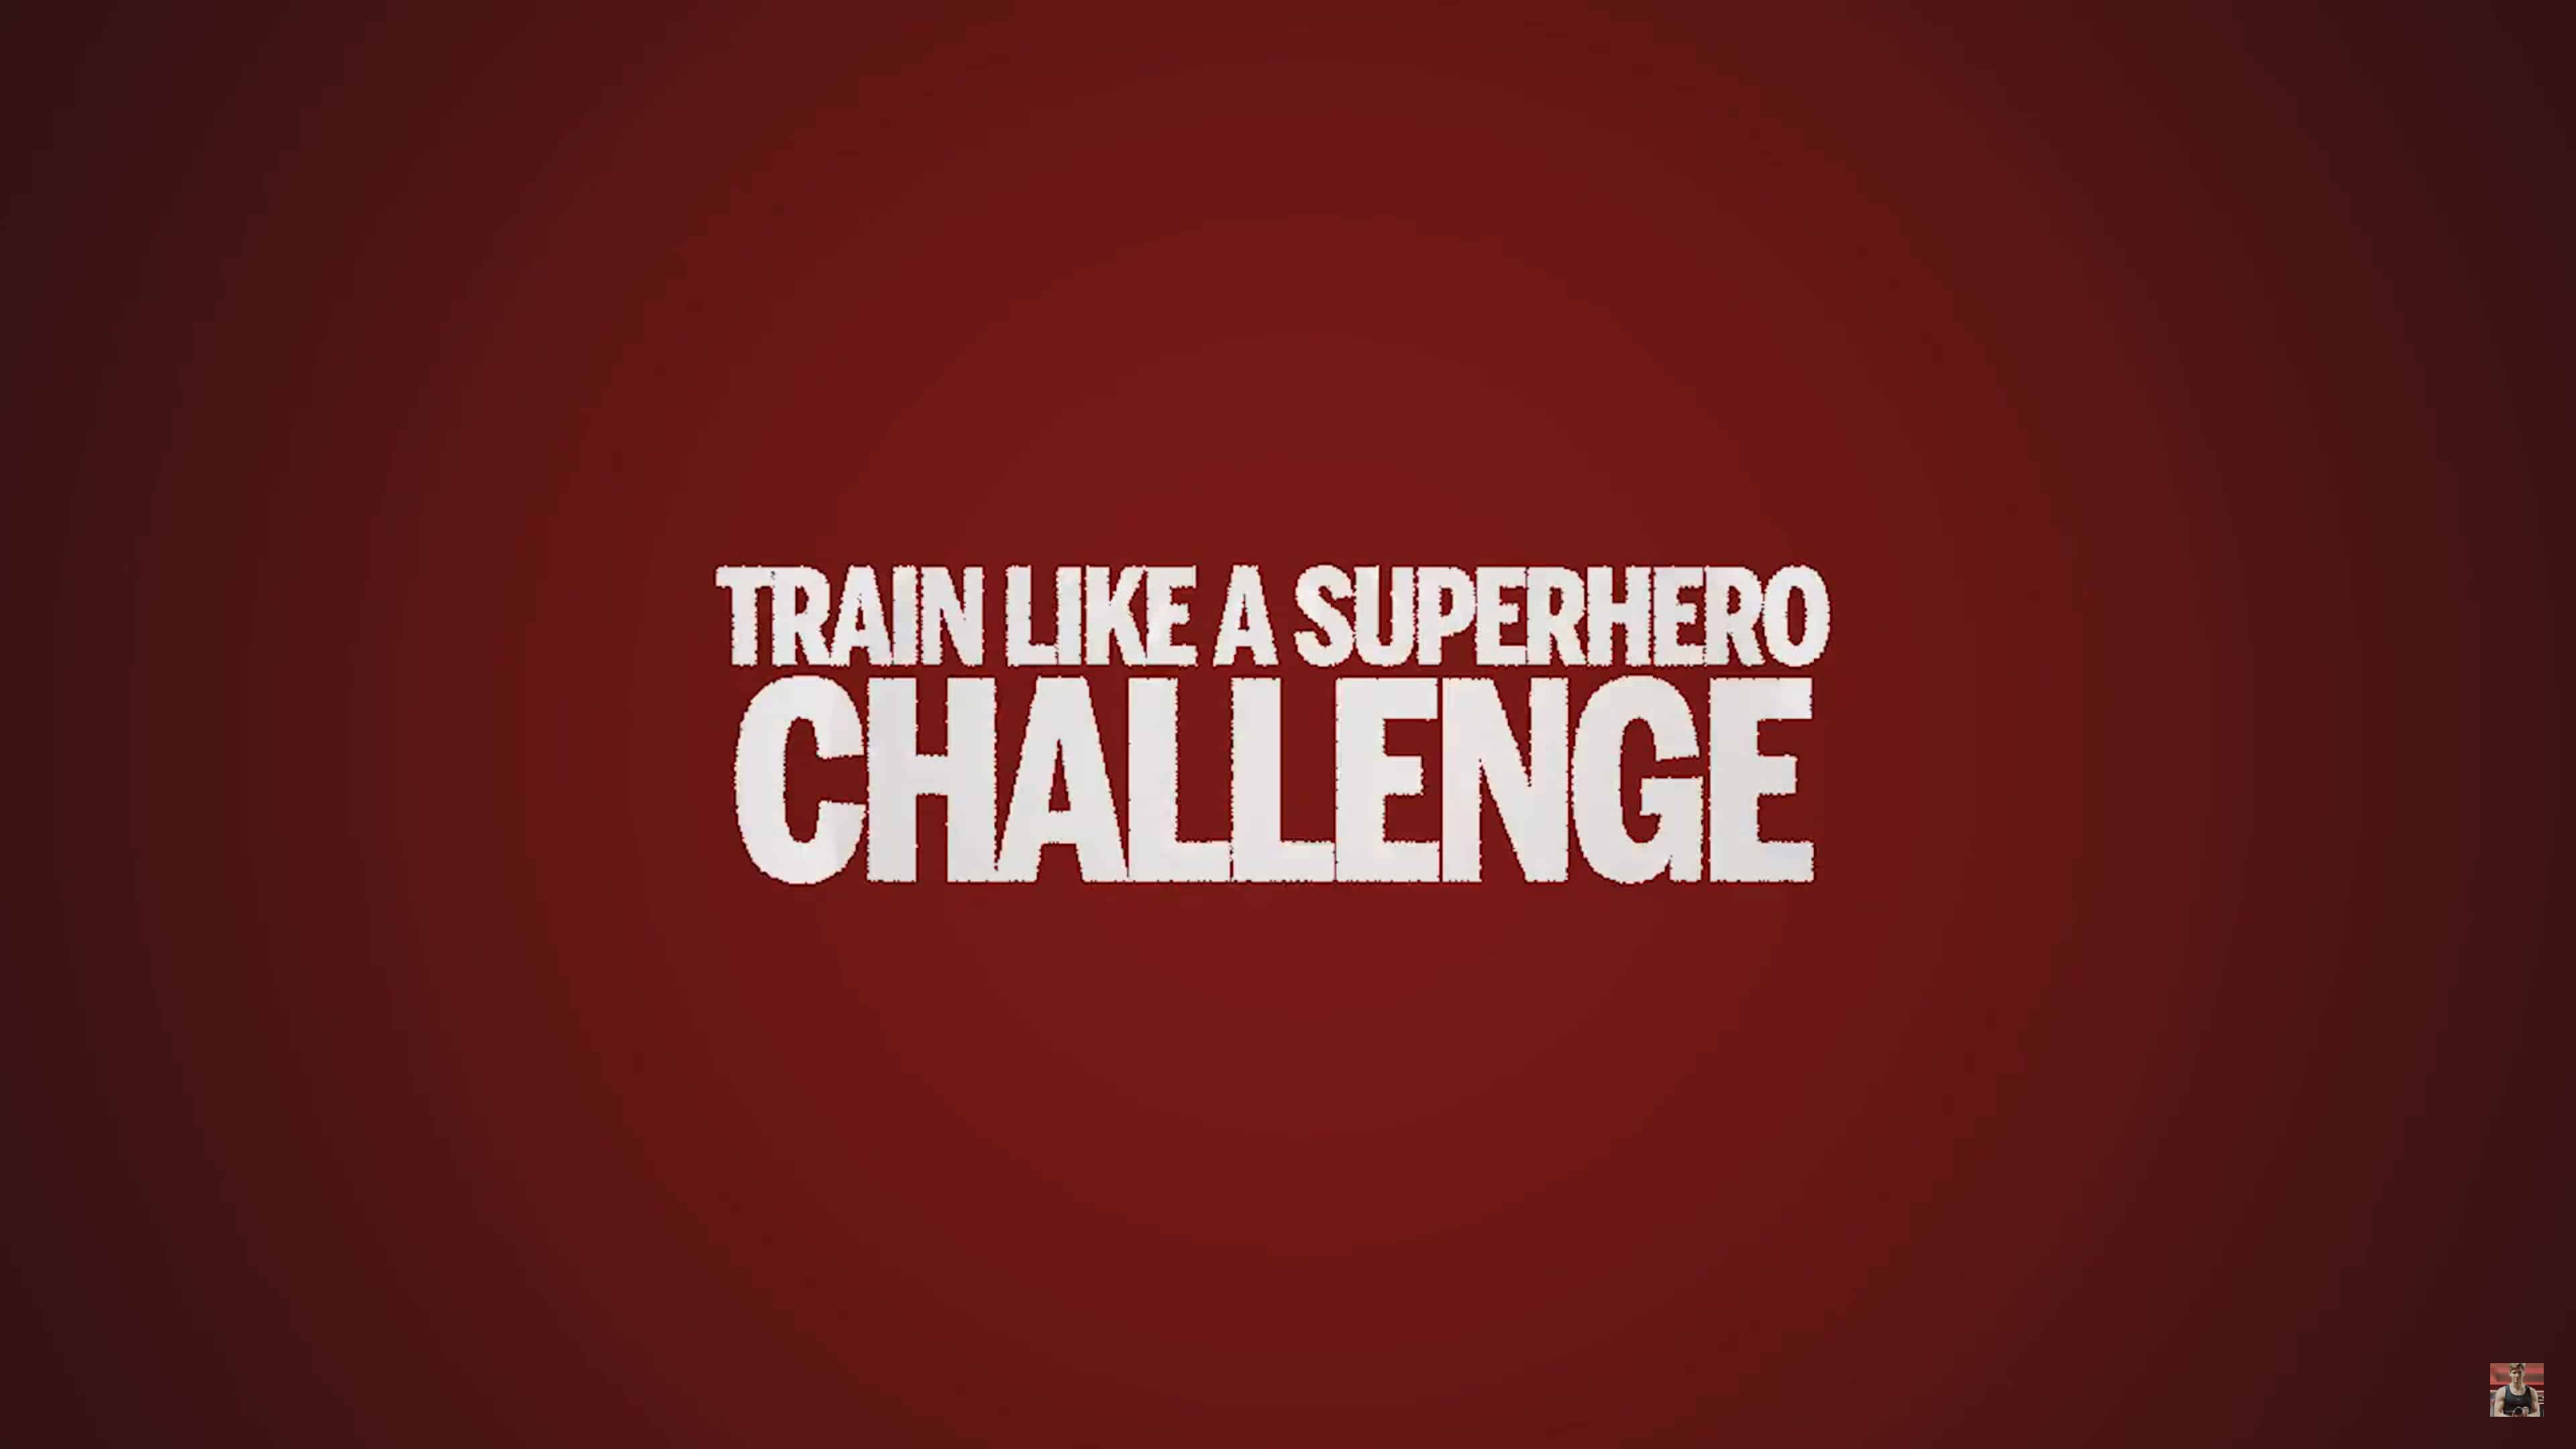 Train Like A Superhero Challenge